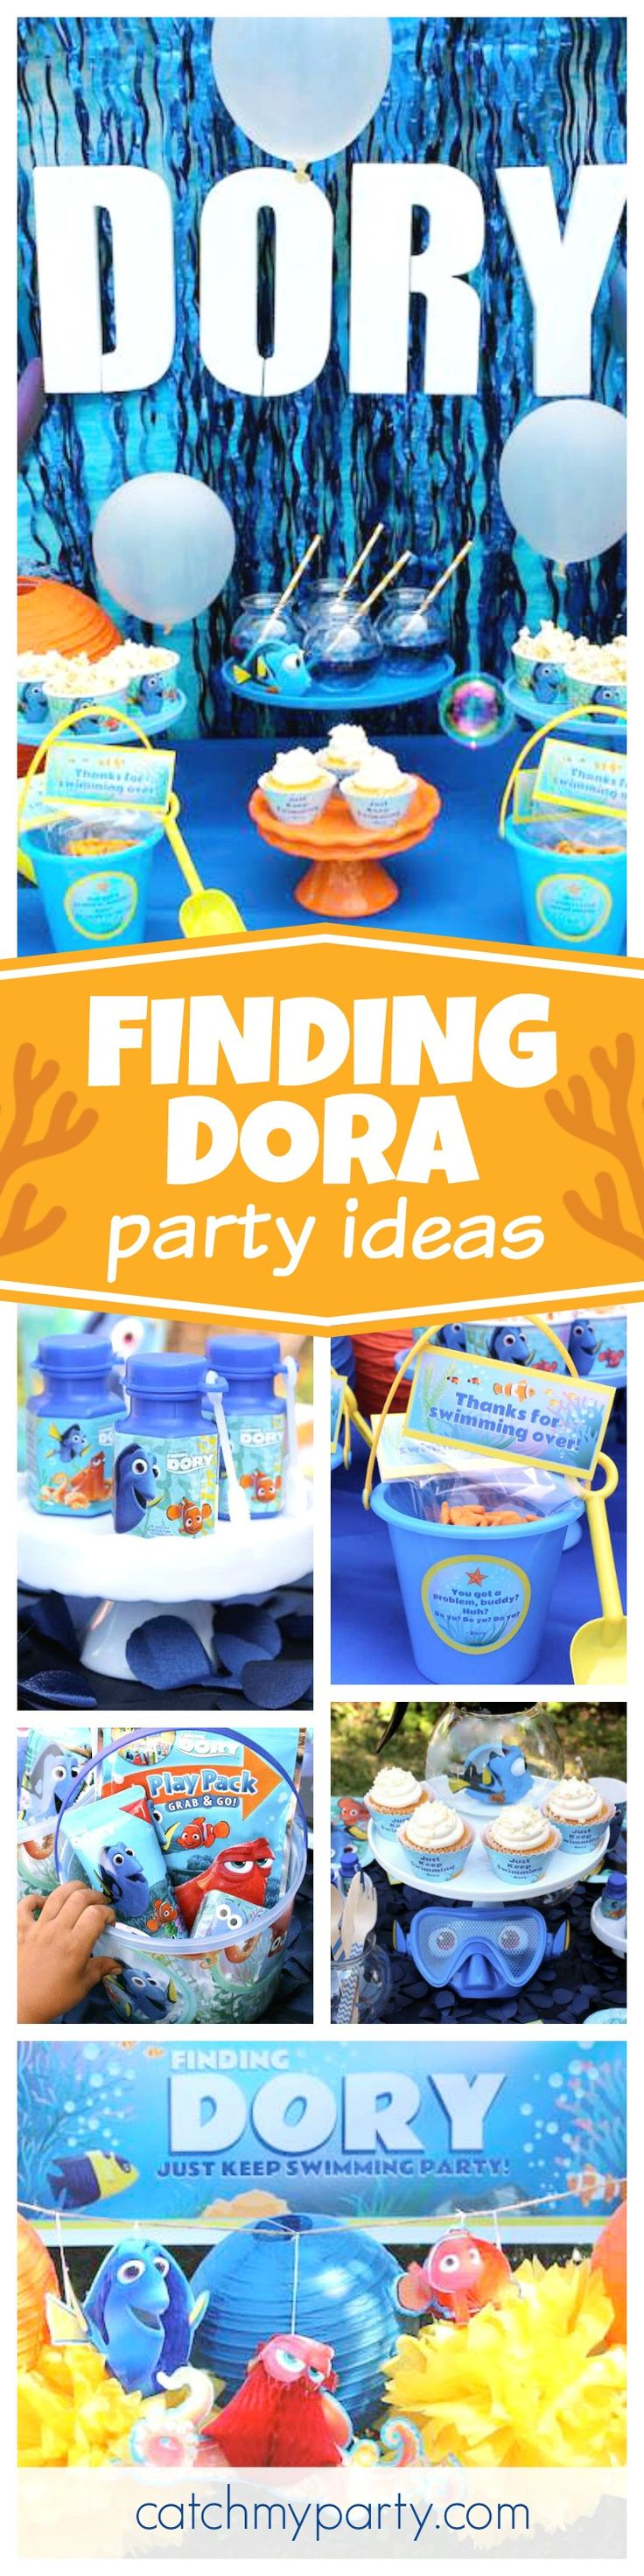 Check out this fun Finding Dora birthday party. The party favors are so cool!! See more party ideas and share yours at CatchMyParty.com